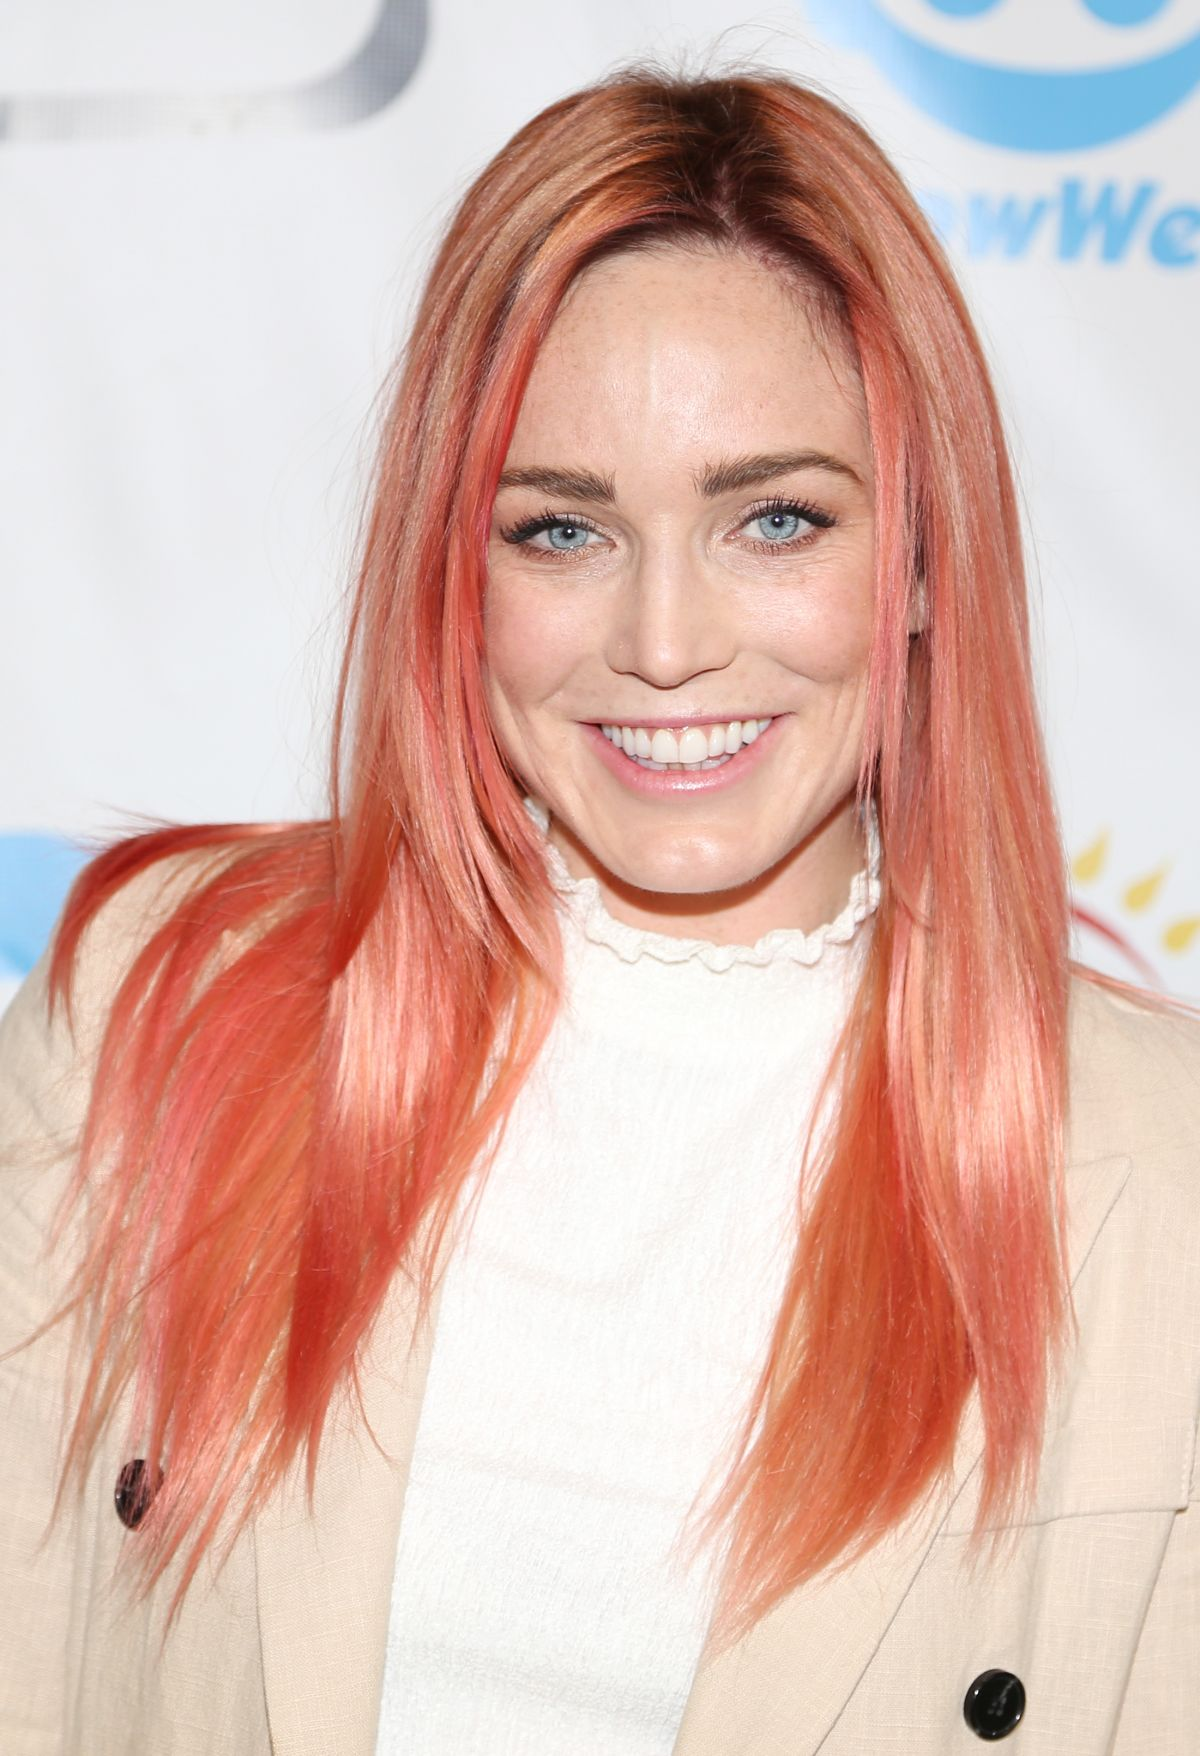 CAITY LOTZ at Celebrities to the Rescue! in Los Angeles 05/06/2017